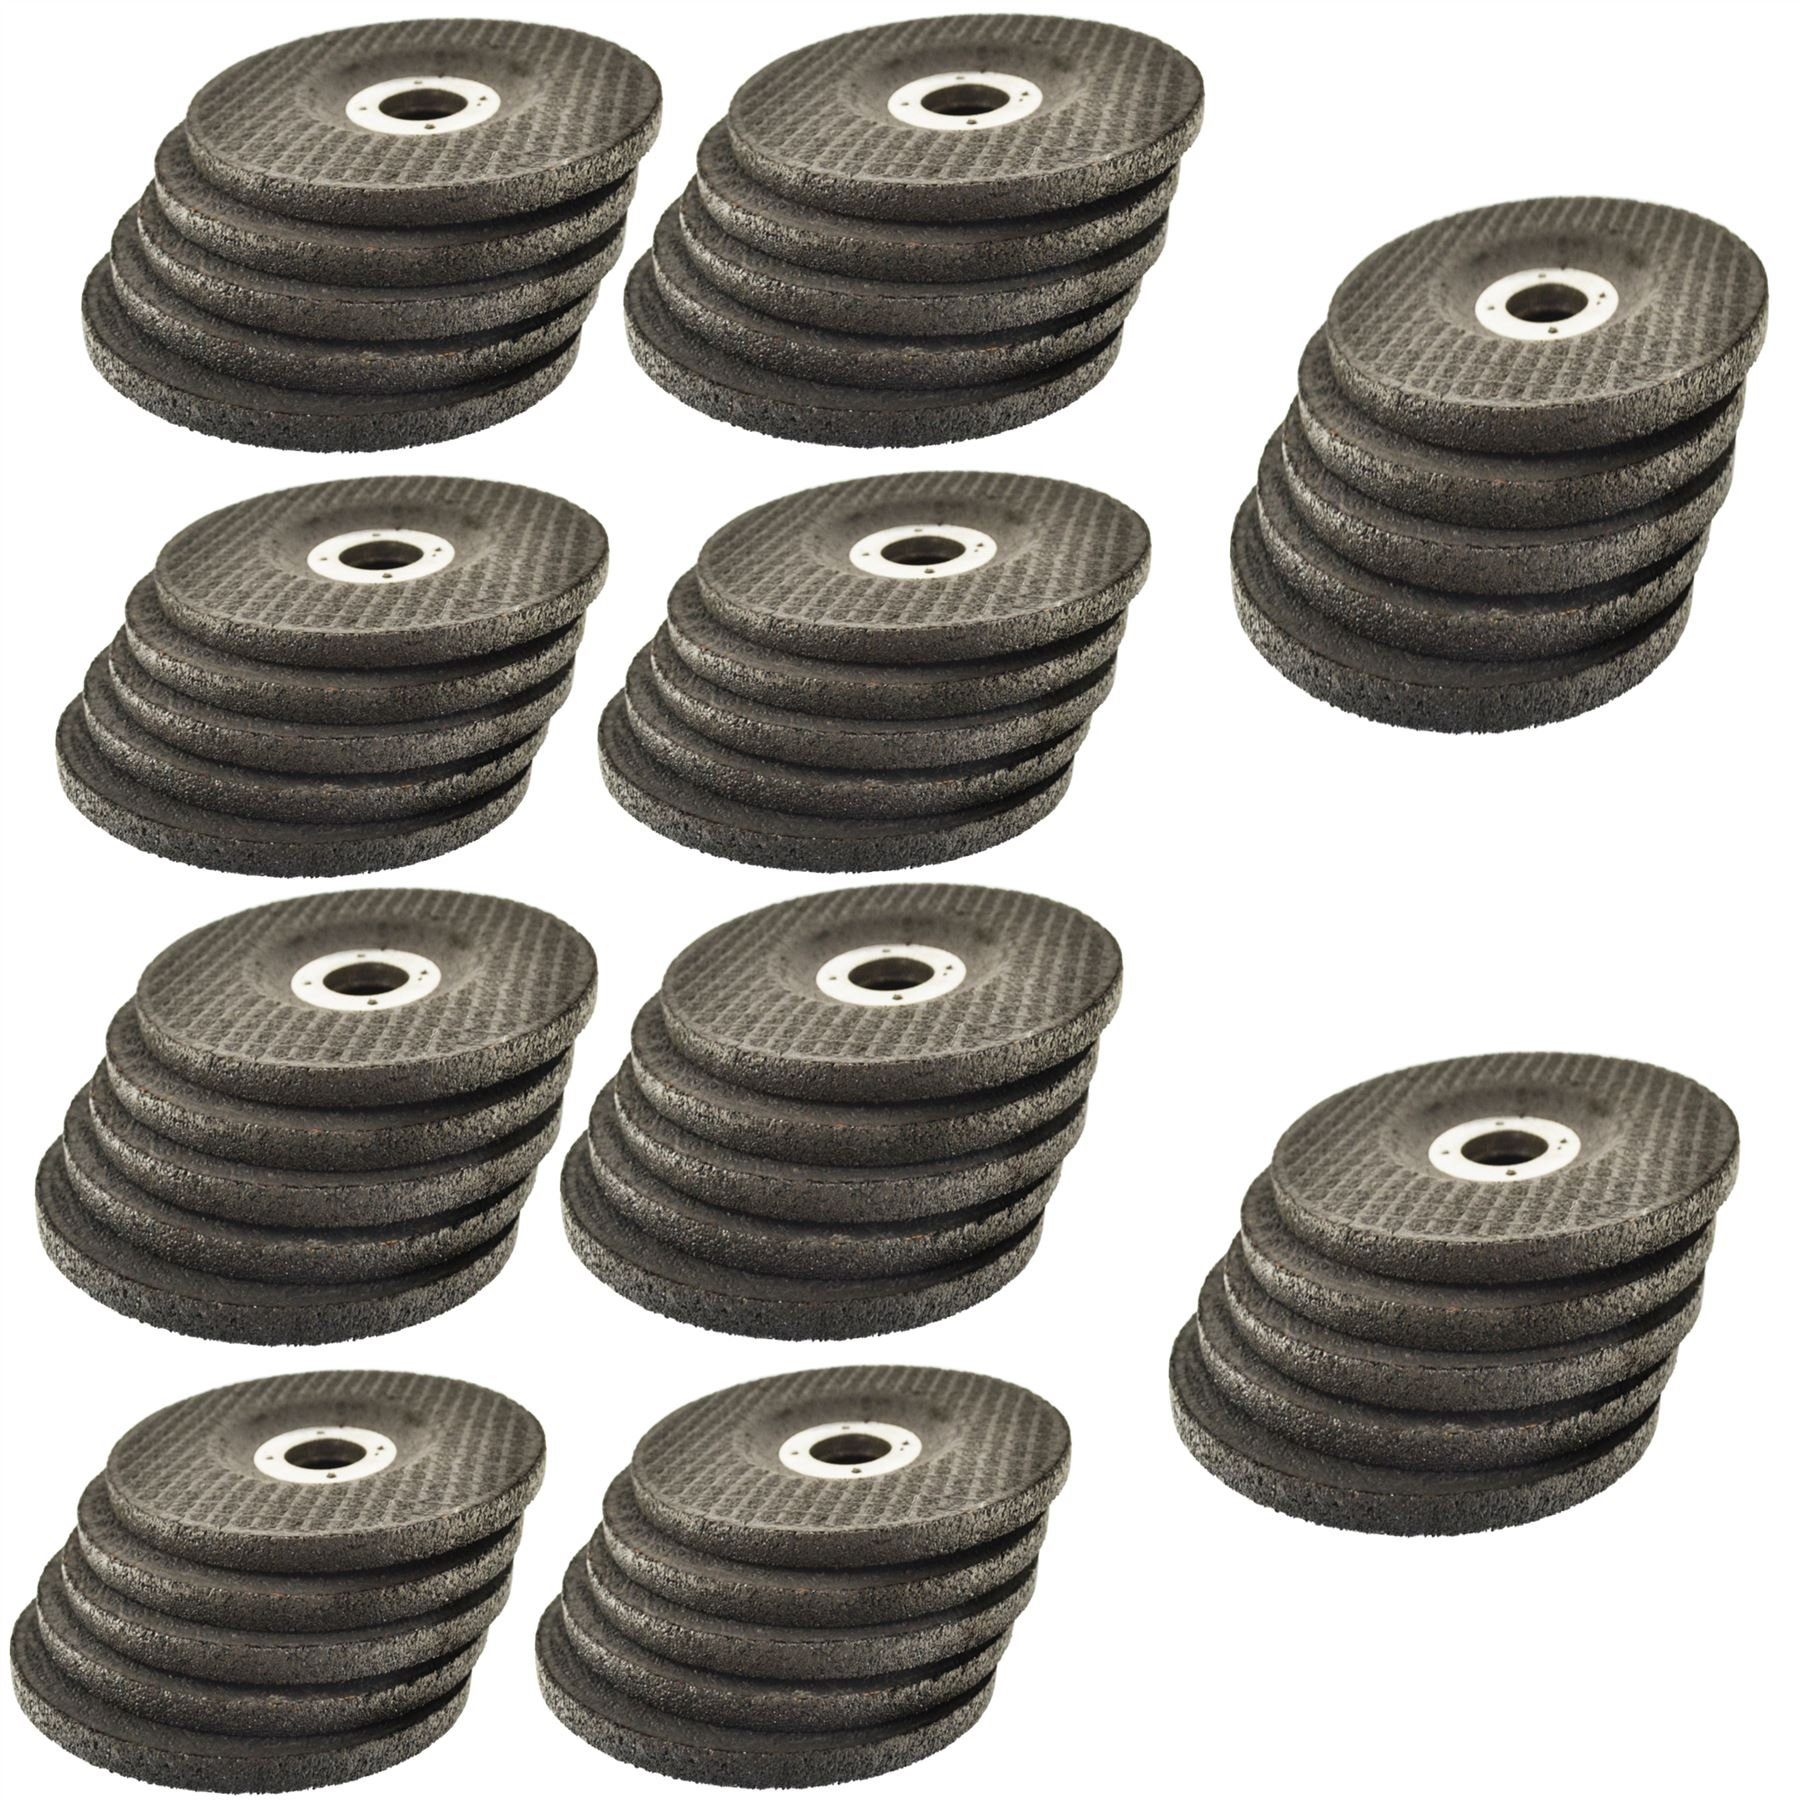 4 1/2'' Depressed/Dished Centre Metal Grinding Disc Stainless Steel AT850_50Pk